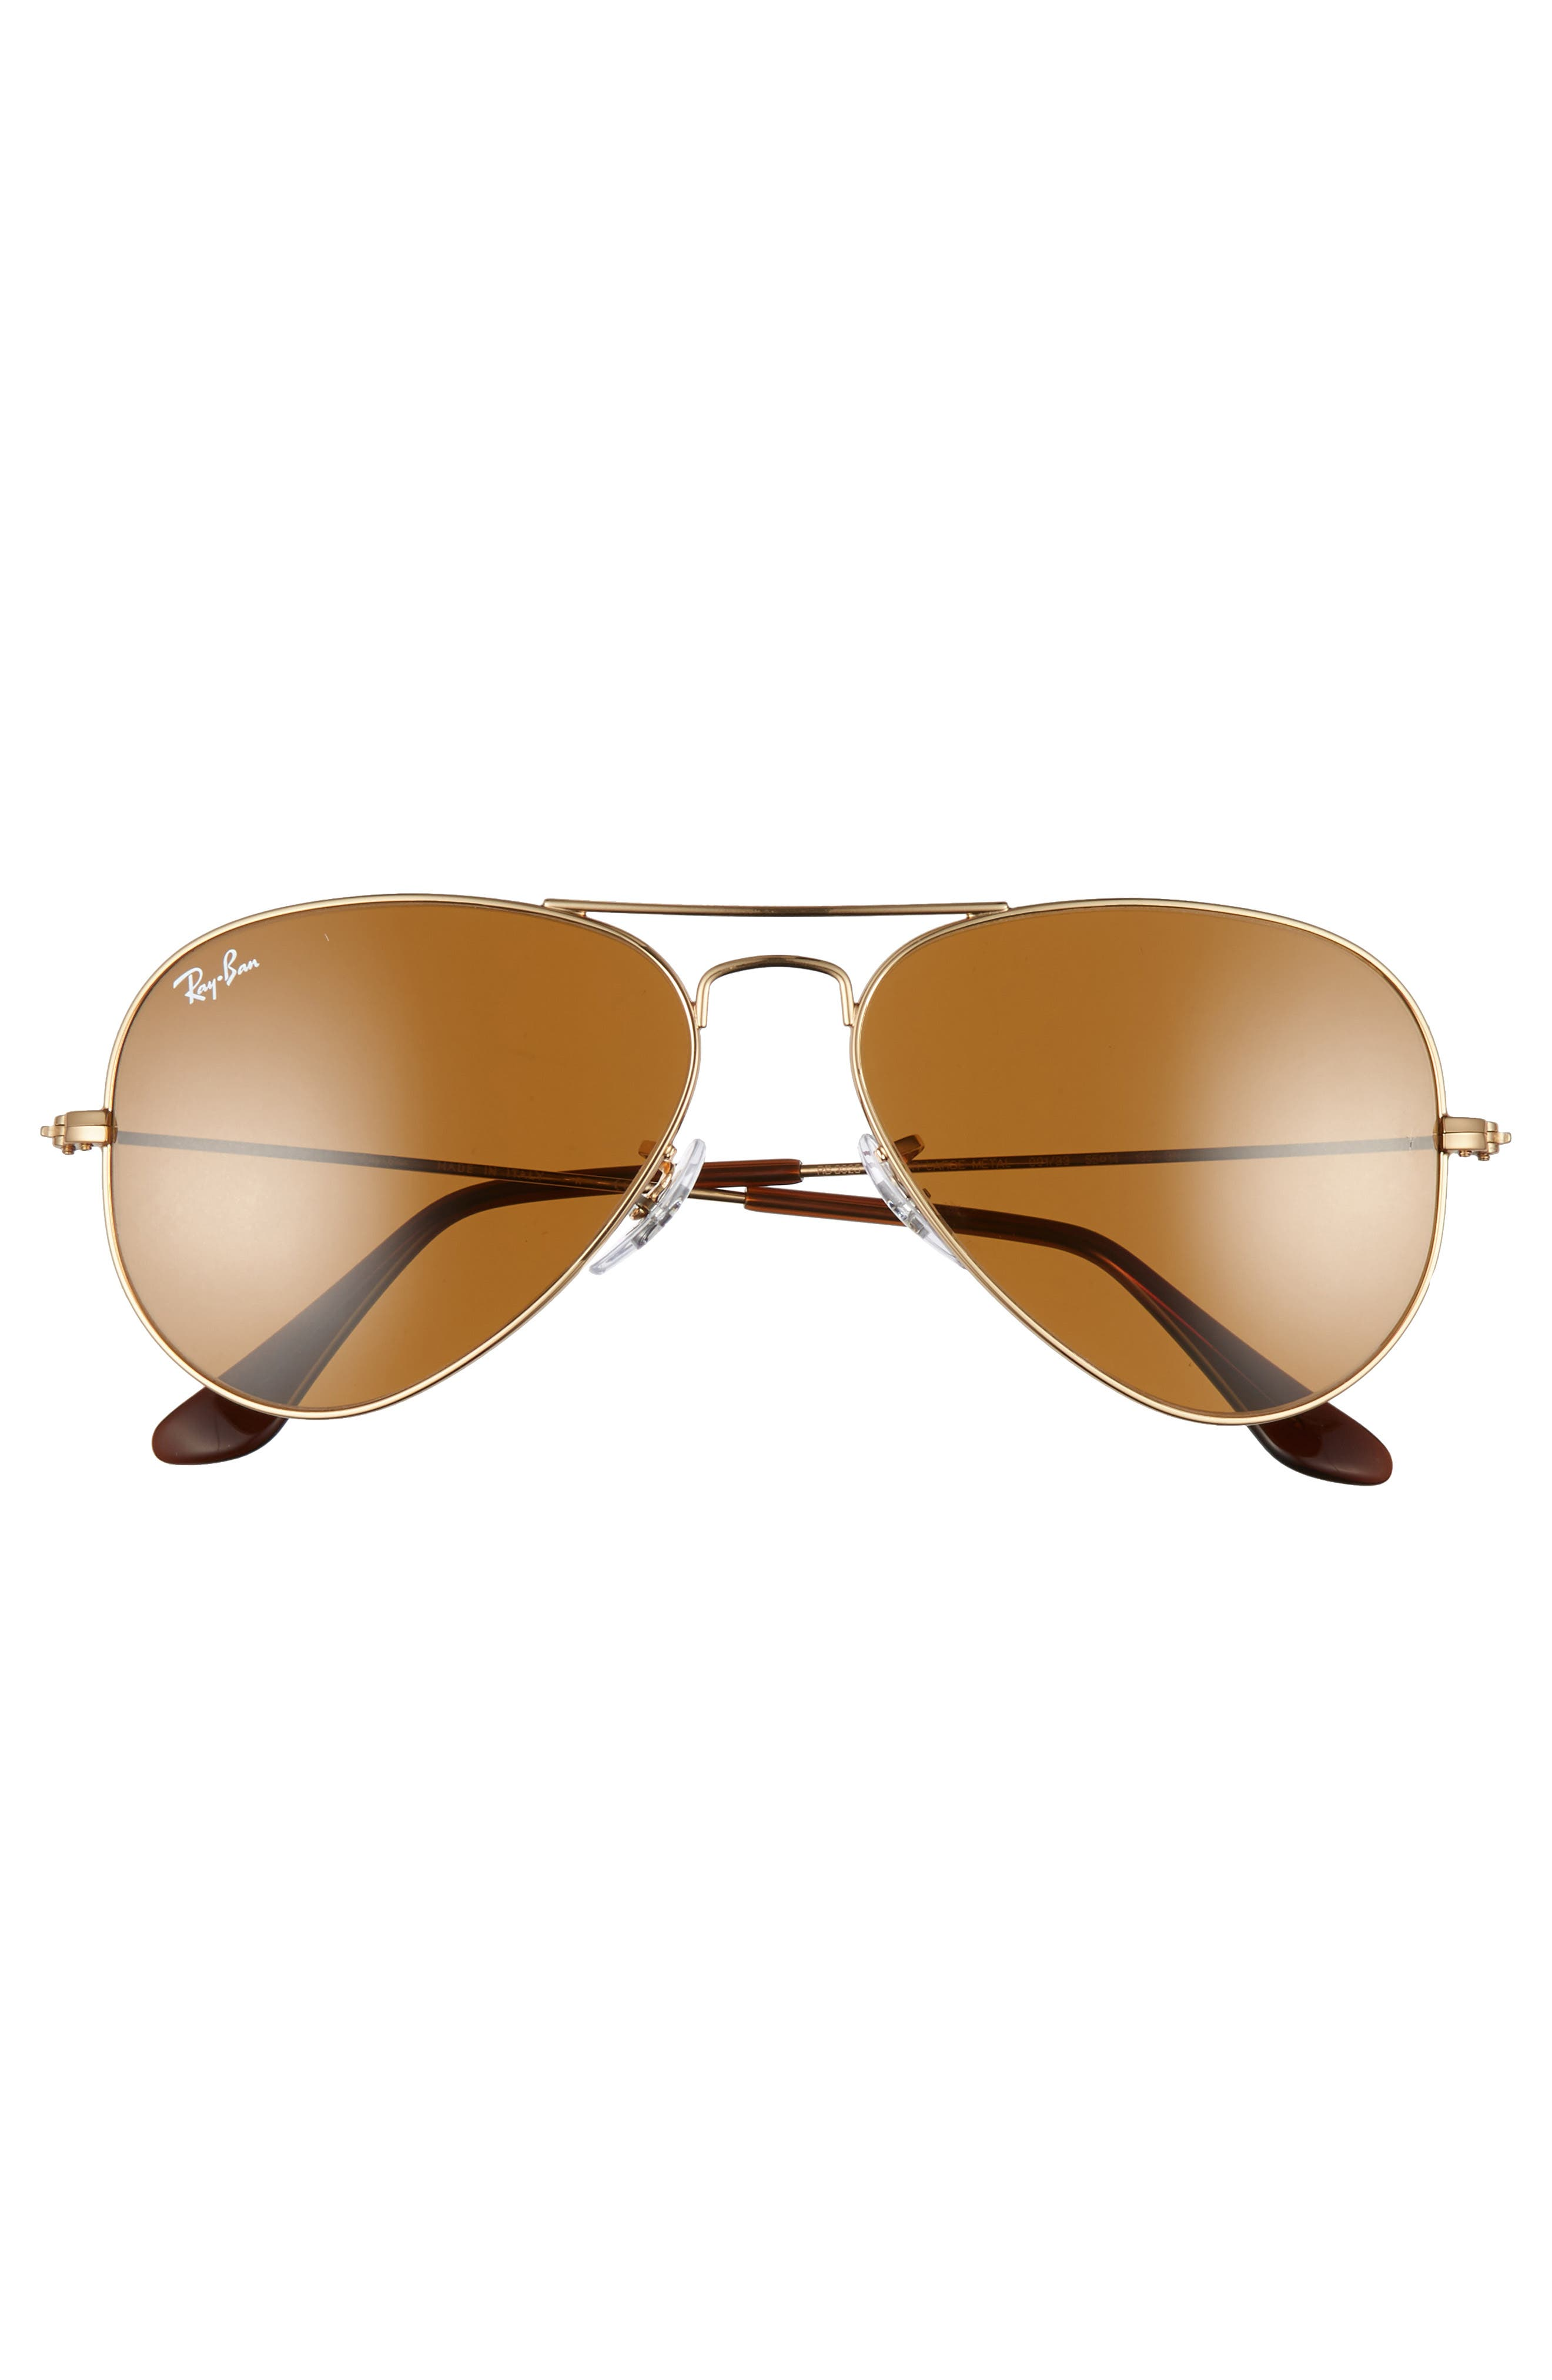 Small Original 55mm Aviator Sunglasses,                             Alternate thumbnail 3, color,                             GOLD/ BROWN SOLID